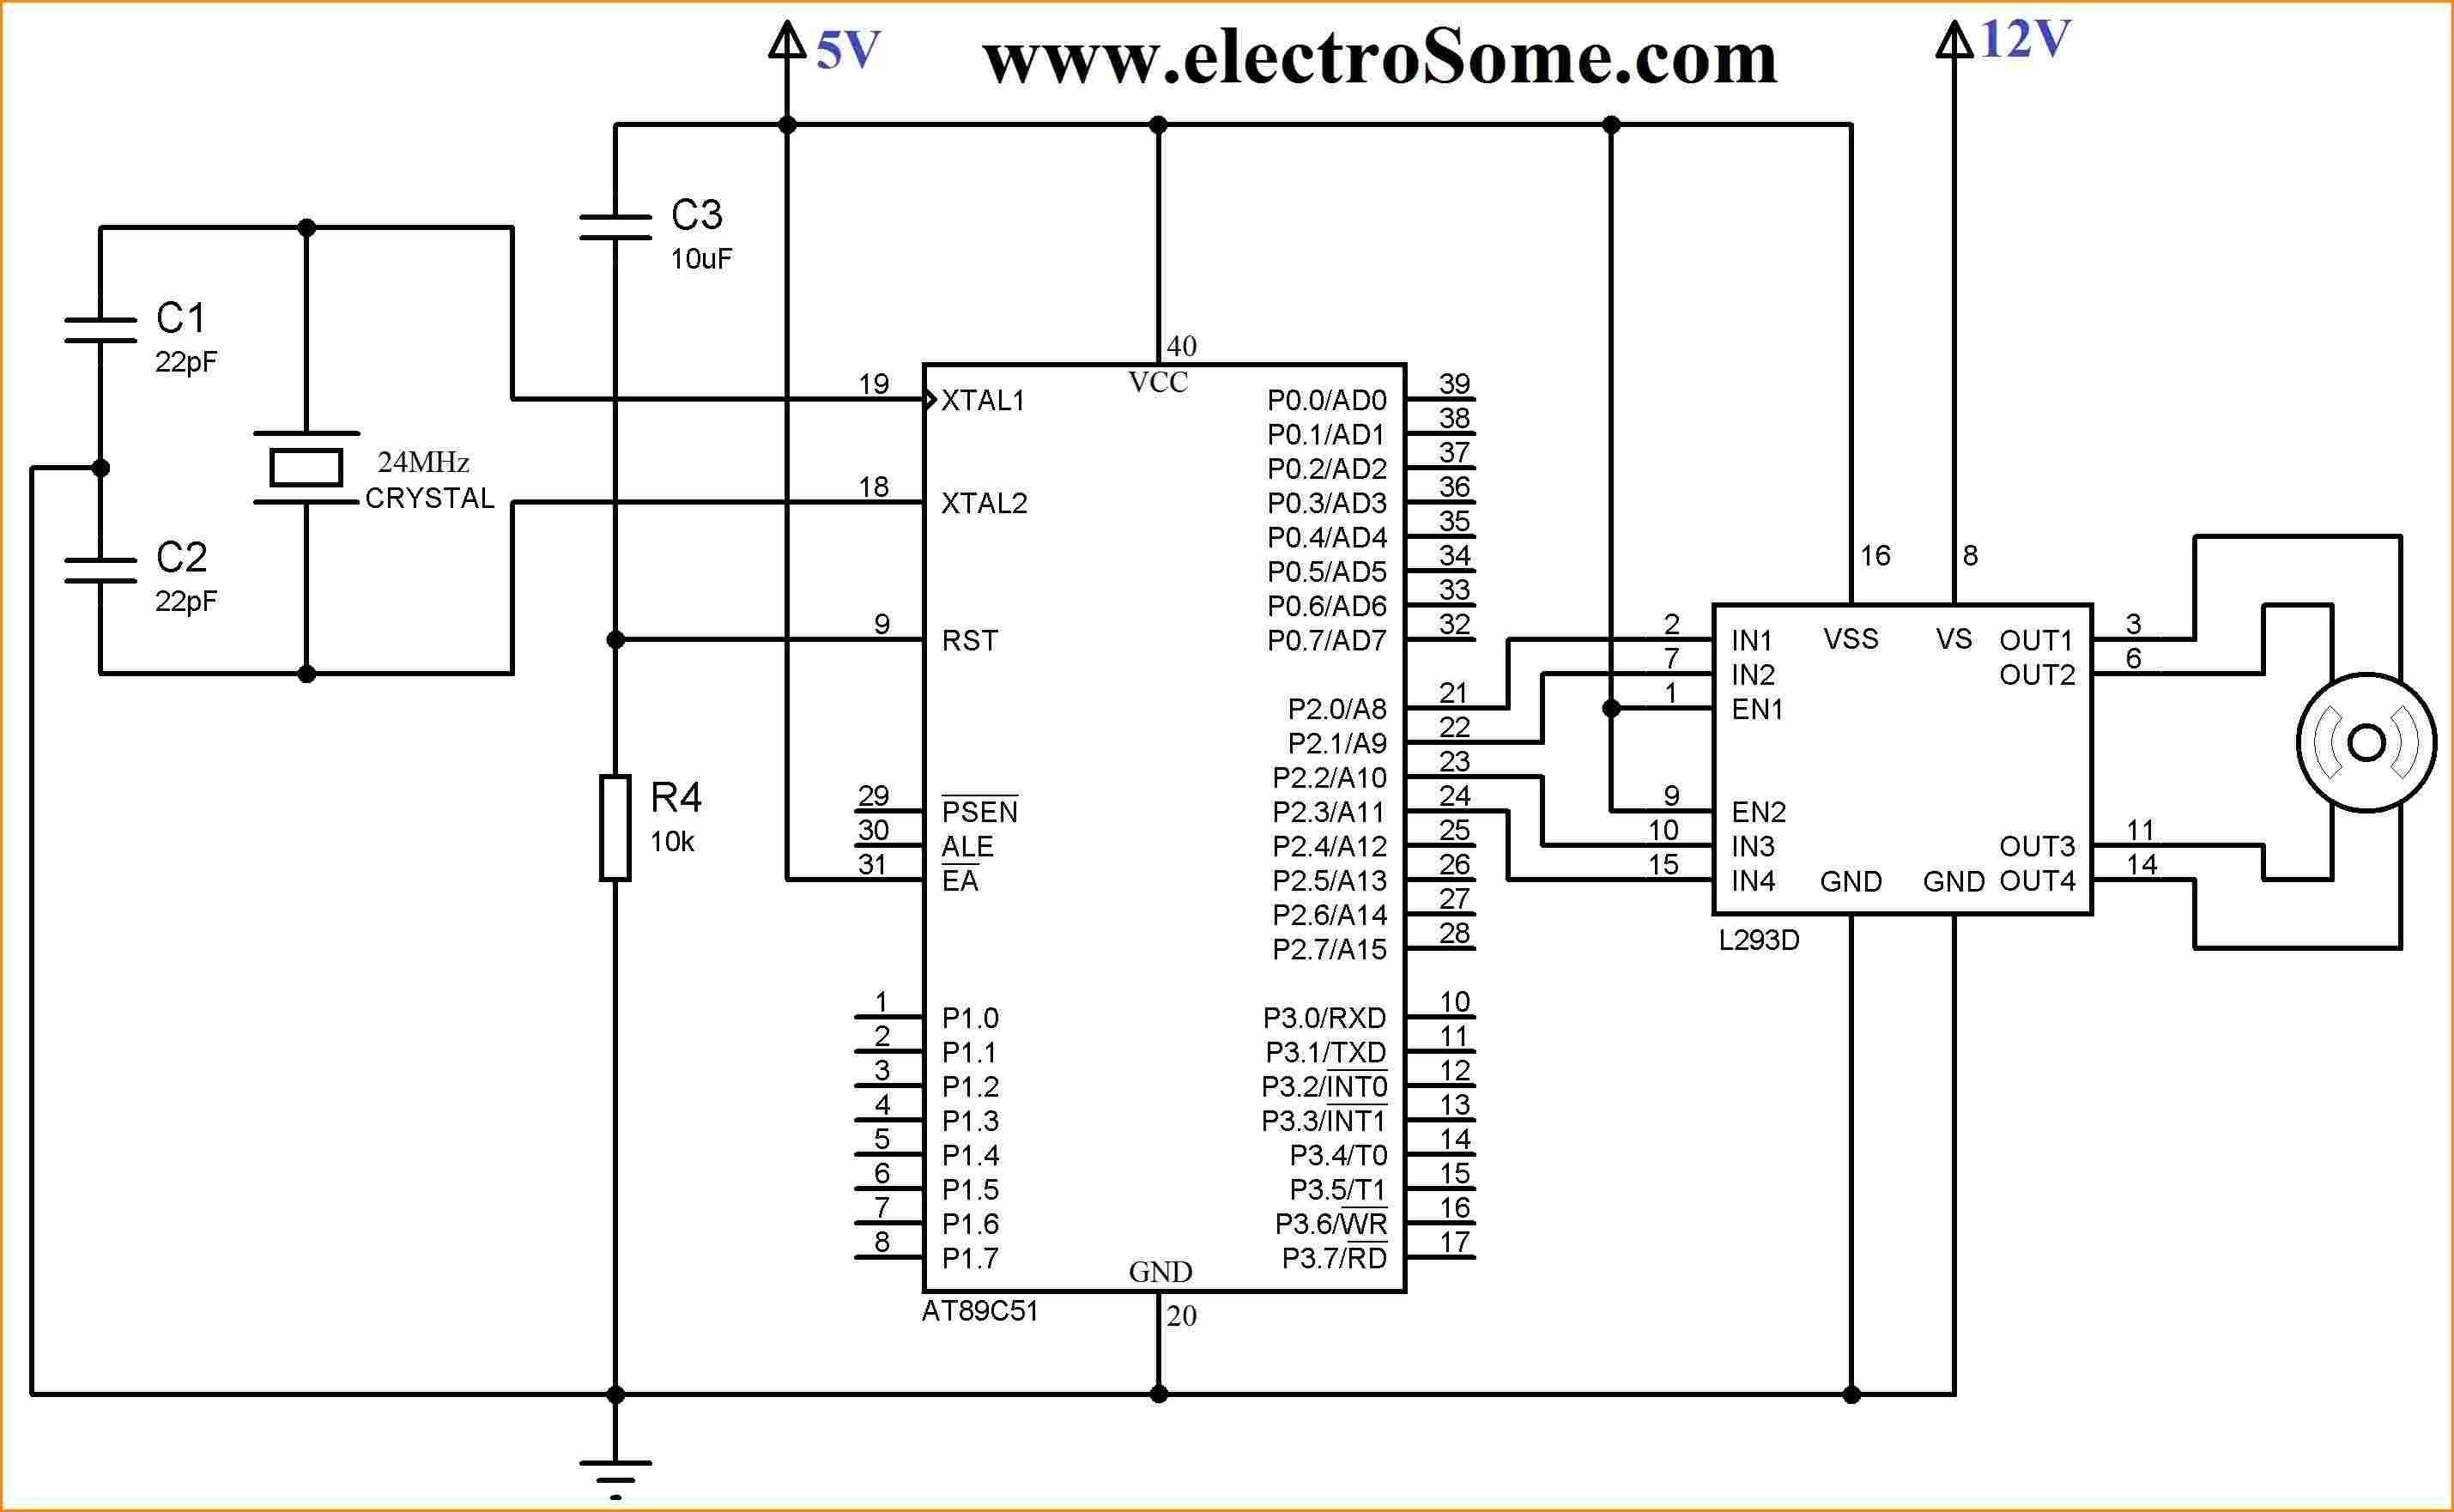 Swann Security Camera N3960 Wiring Diagram Collection Electrical For - Swann N3960 Wiring Diagram